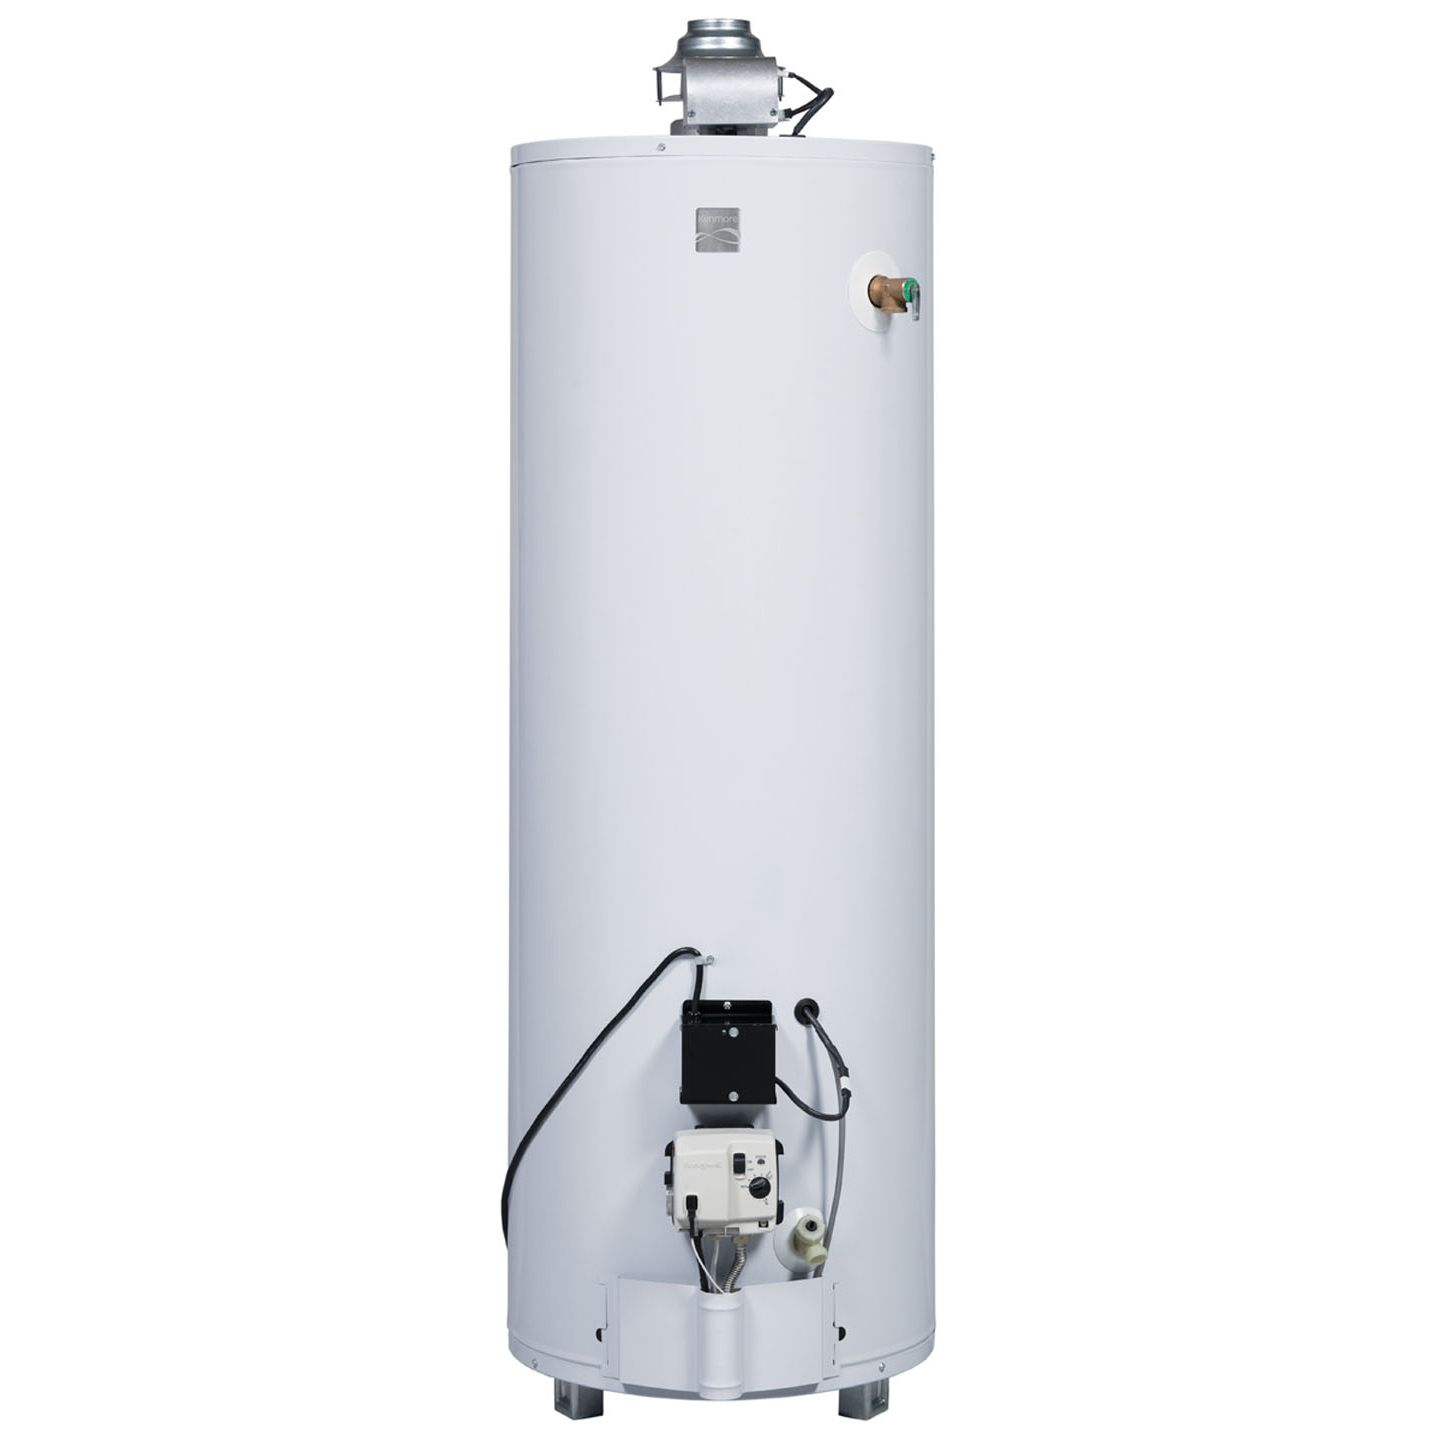 Kenmore  40 gal. 6-Year Natural Gas Water Heater  ENERGY STAR®